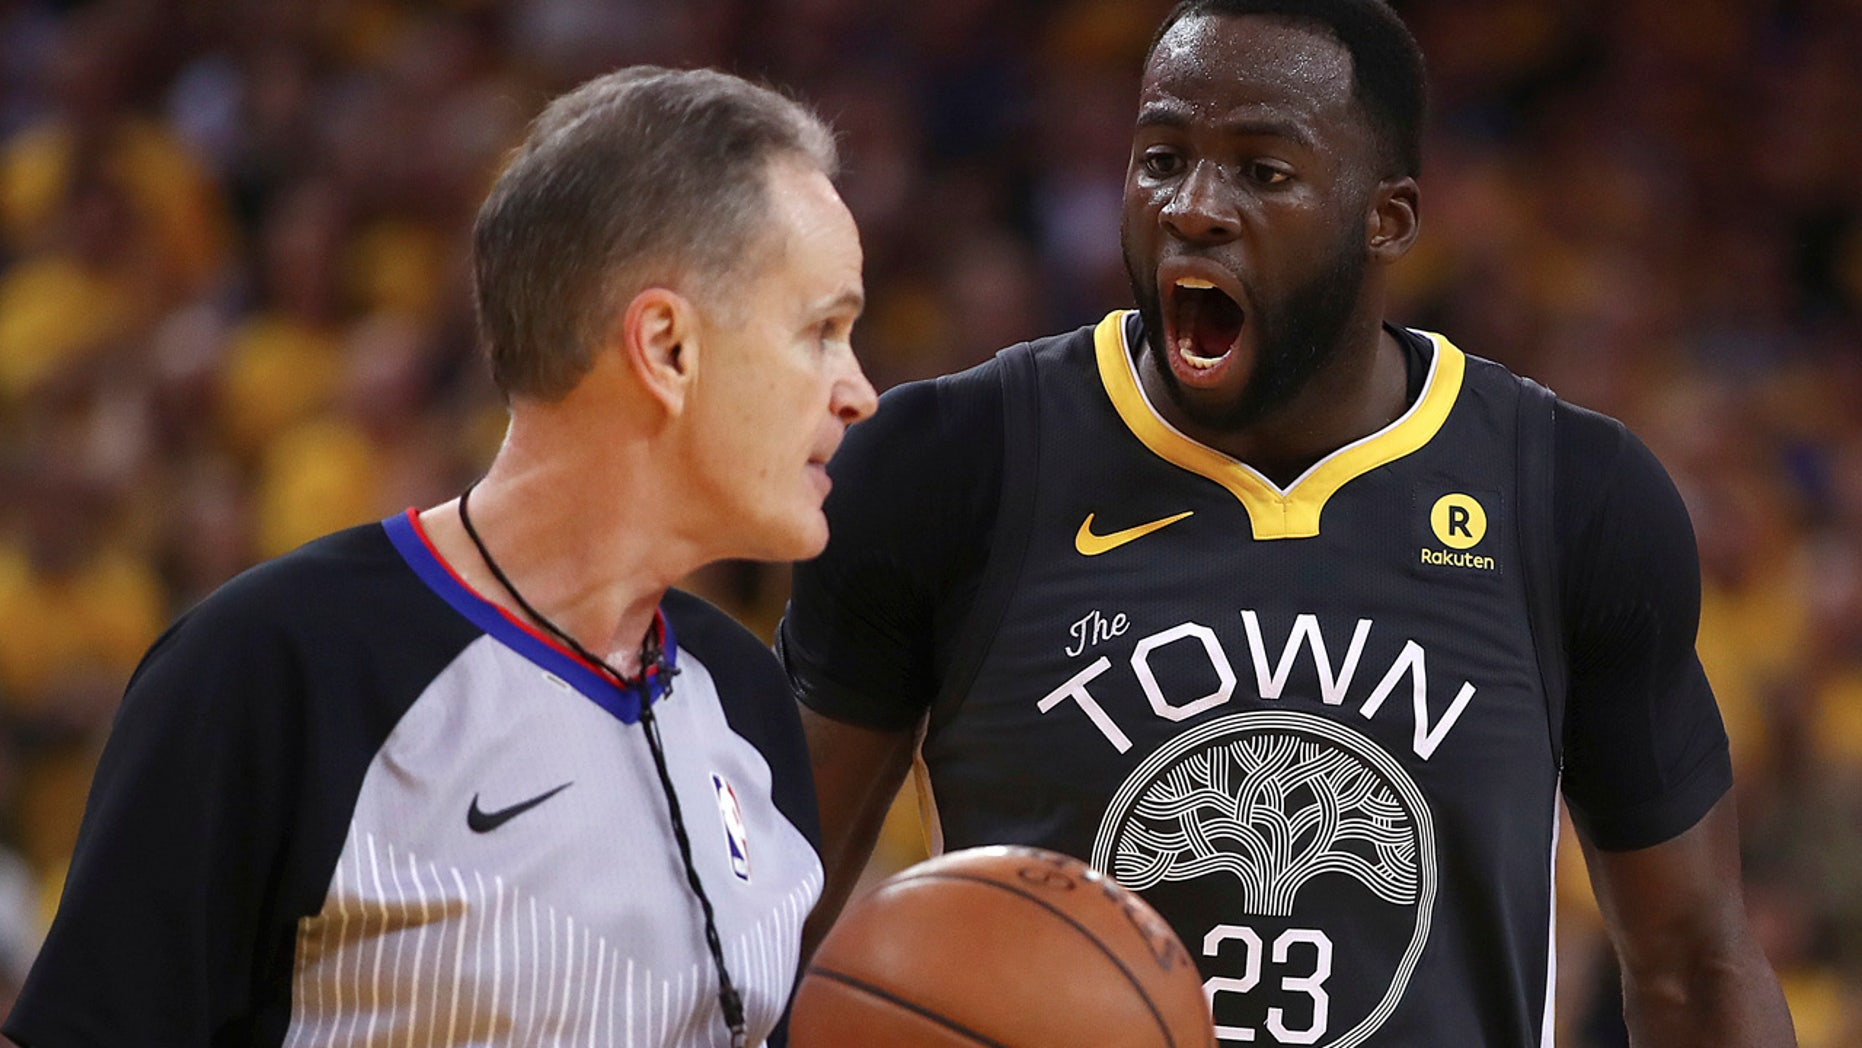 May 1: Golden State Warriors' Draymond Green says he feels sad for anyone who threatens violence over a basketball game and prays they get the help they need.